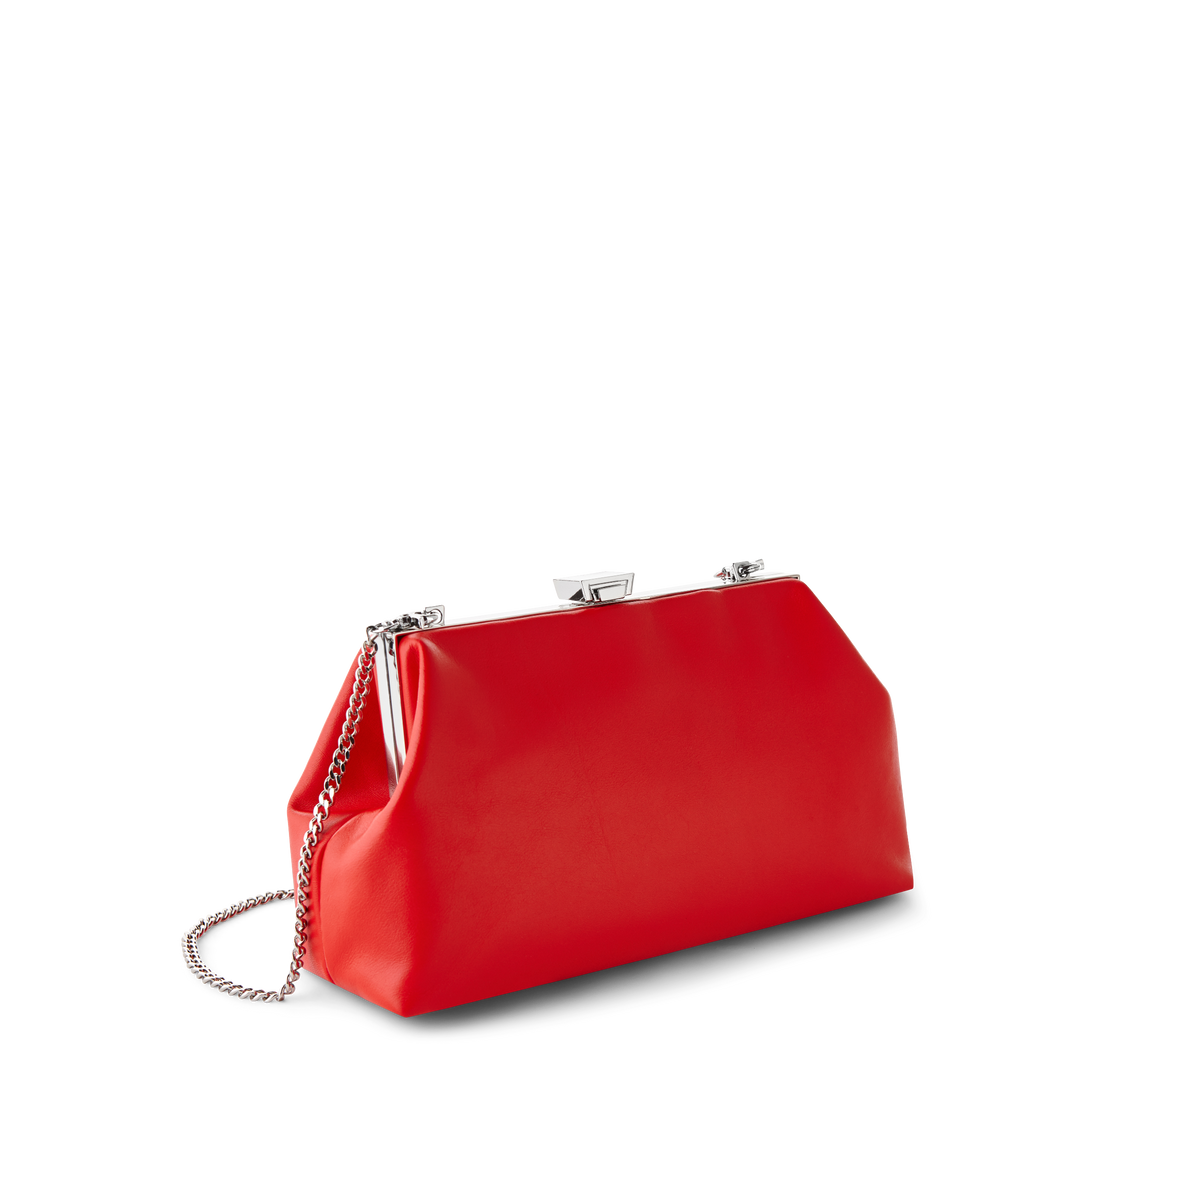 Cherry Leather Jewel Bag with Silver Chain Strap